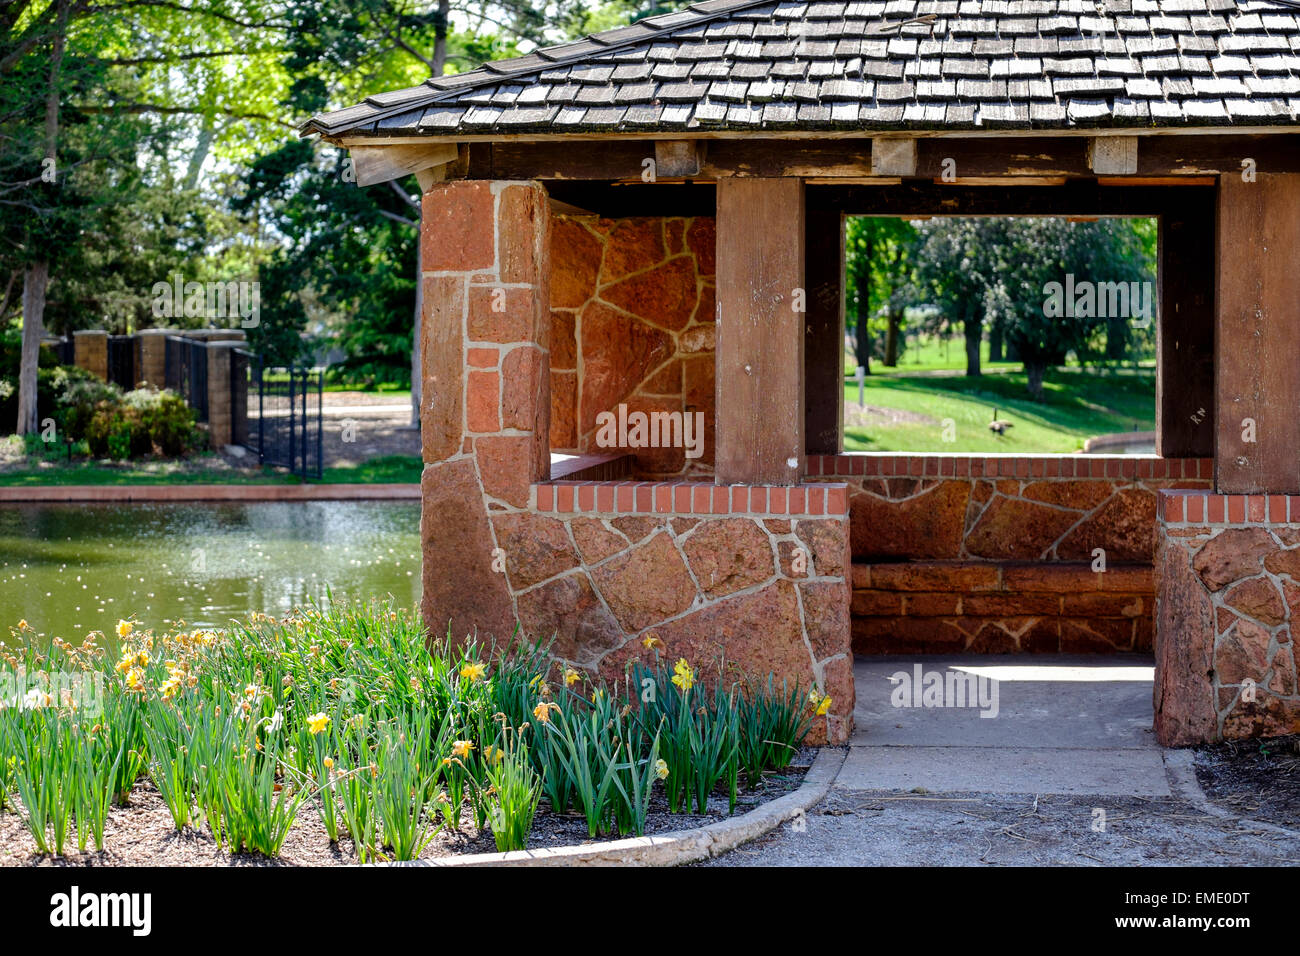 Rogers Garden Stone A stone gazebo located in will rogers park in oklahoma city stock a stone gazebo located in will rogers park in oklahoma city oklahoma workwithnaturefo